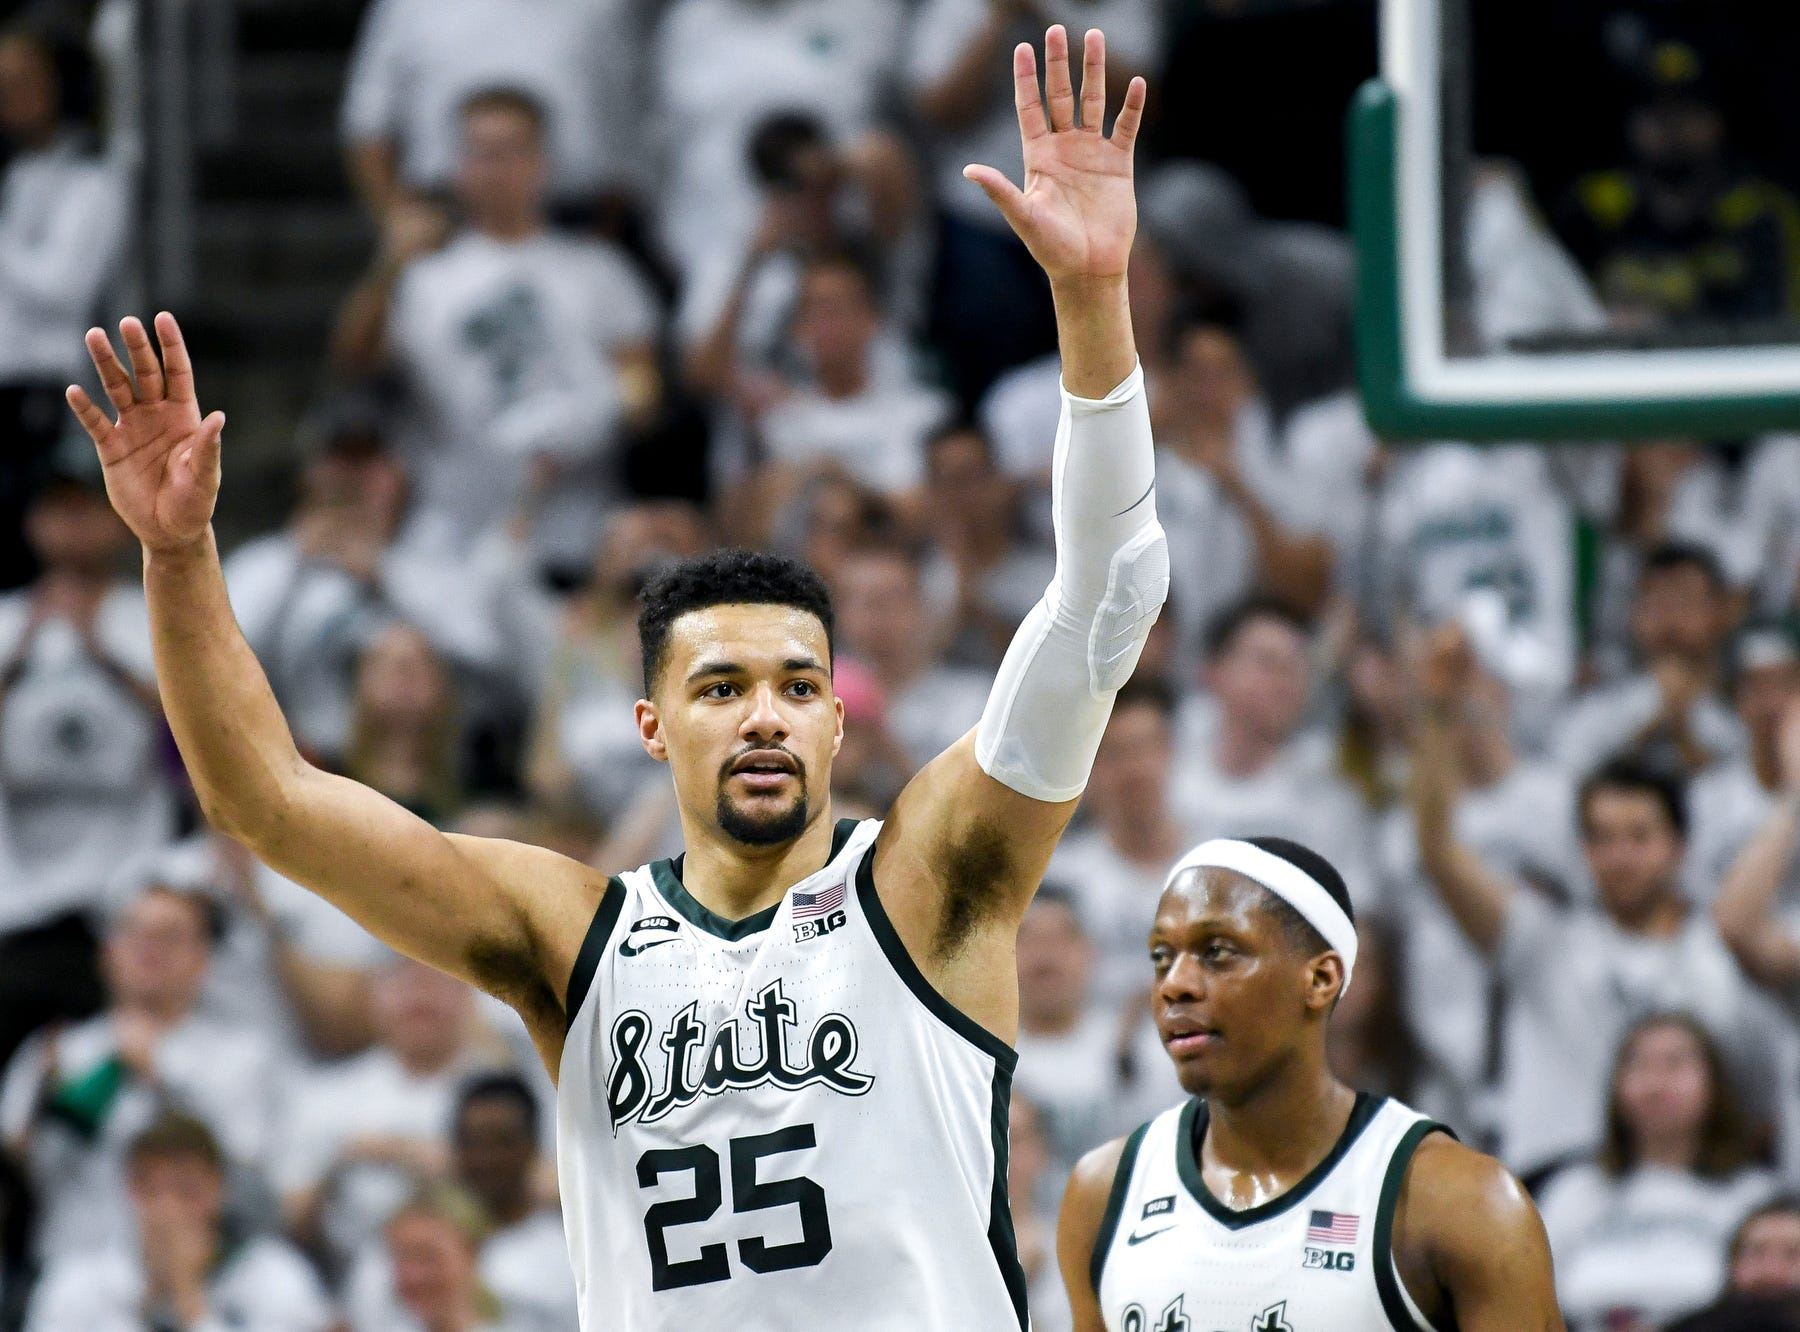 Michigan State senior Kenny Goins is recognized by the crowd during the second half on Saturday, March 9, 2019, at the Breslin Center in East Lansing.